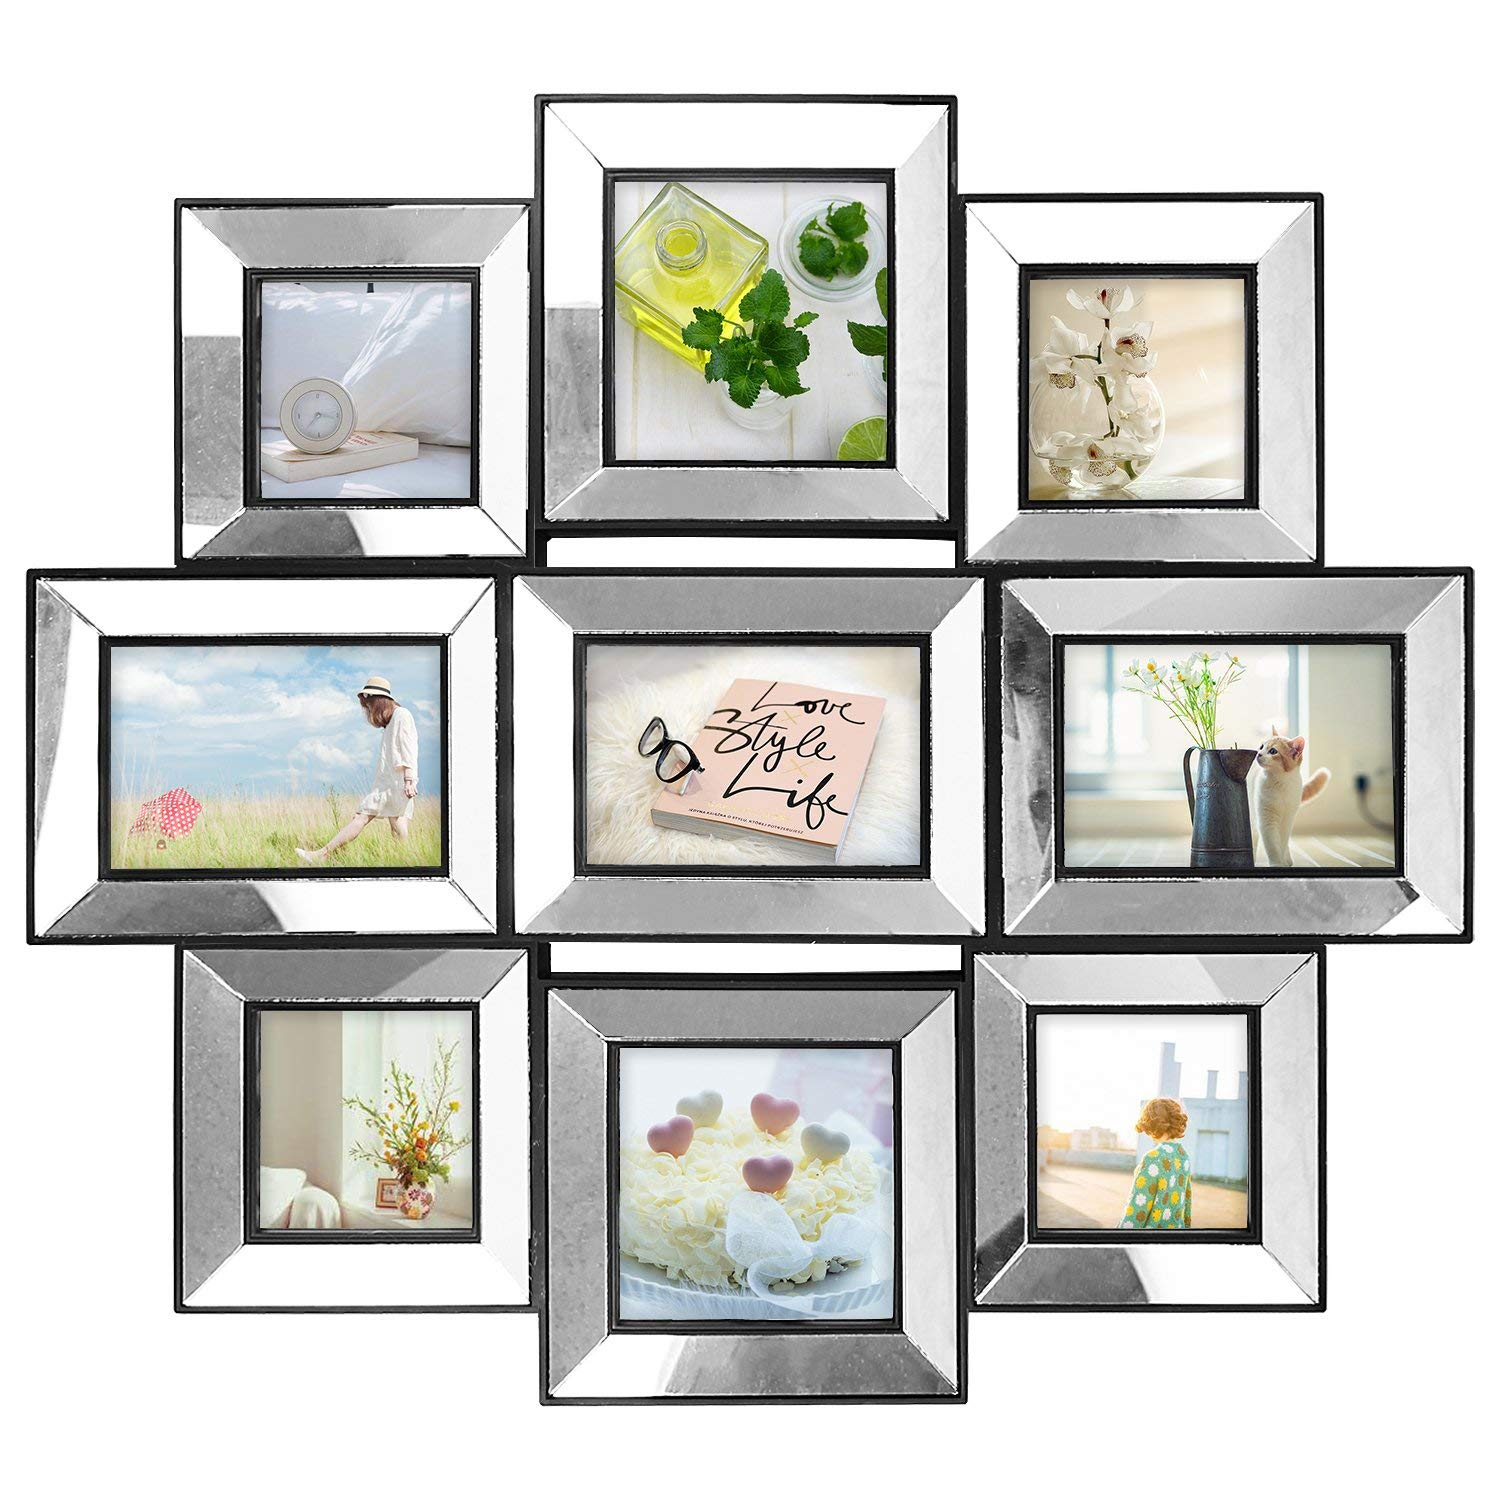 Cheap Frame Design On Wall Find Frame Design On Wall Deals On Line At Alibaba Com